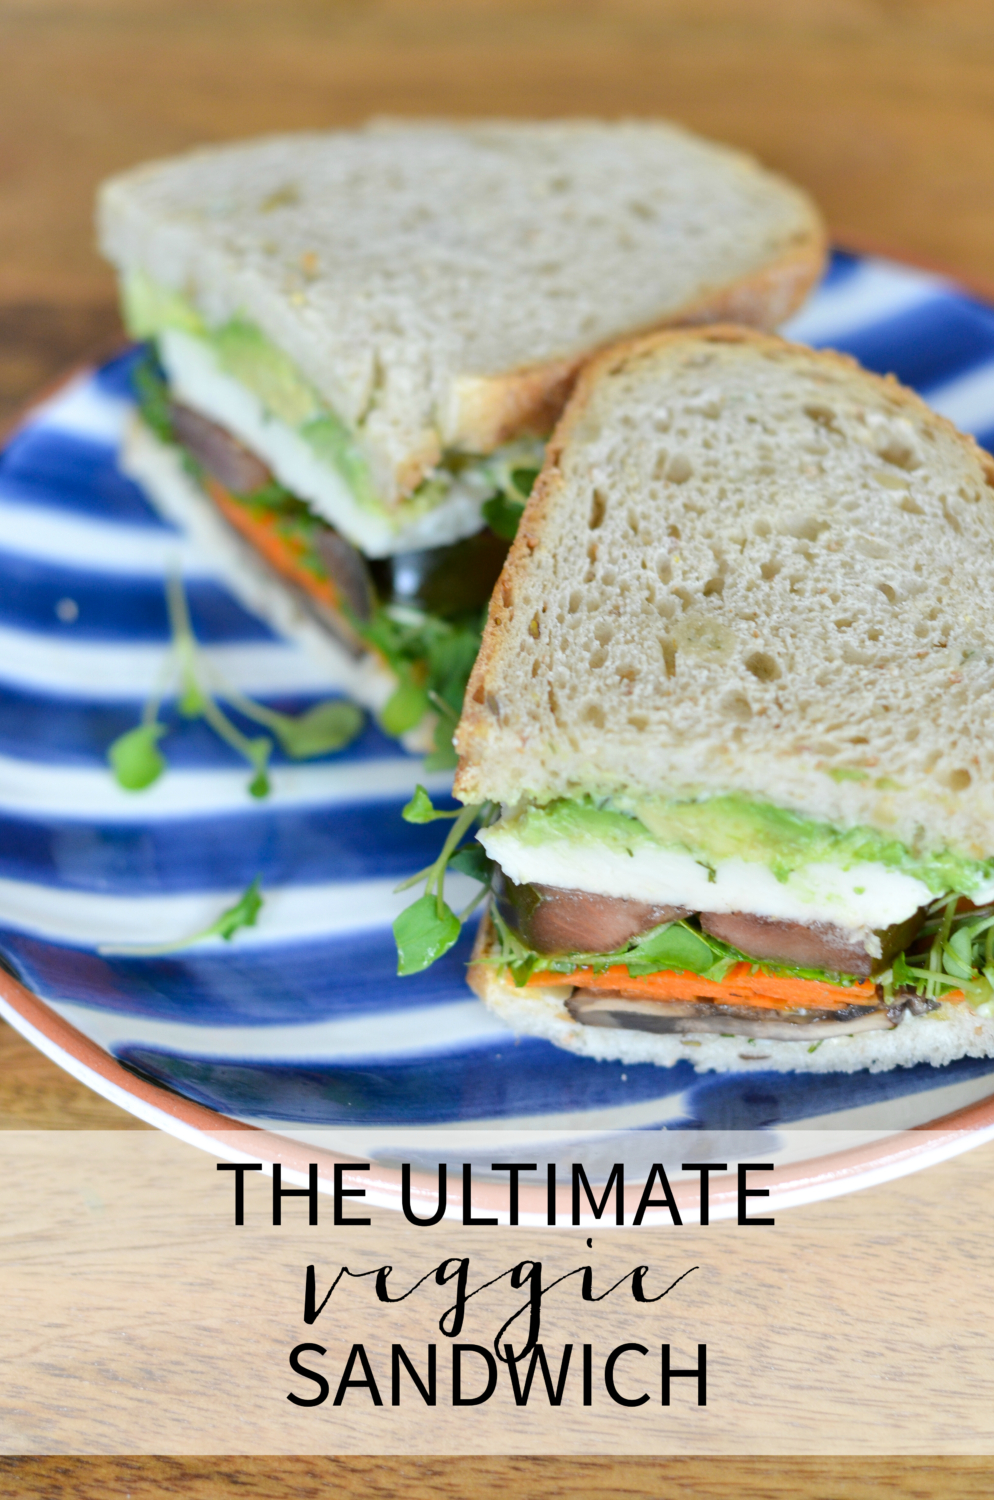 The ultimate vegetarian sandwich recipe - you do not have to wait for a restaurant to make you an amazing veggie sandwich for lunch. Feed yourself well at home in about 15 minutes!